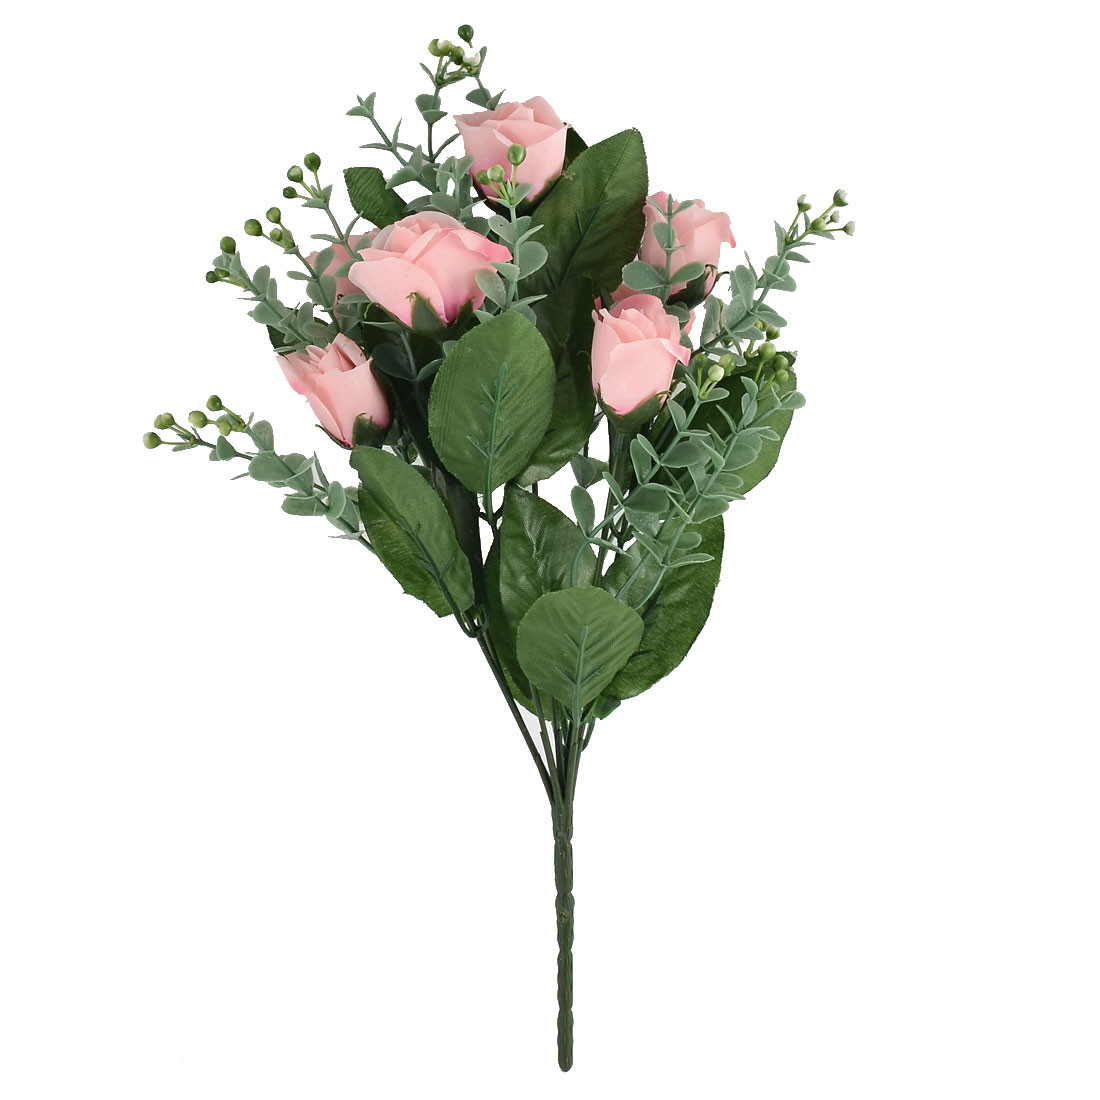 Festival Wedding Adornment 7 Heads Flower Blossom Artificial Rose Bouquet Pink